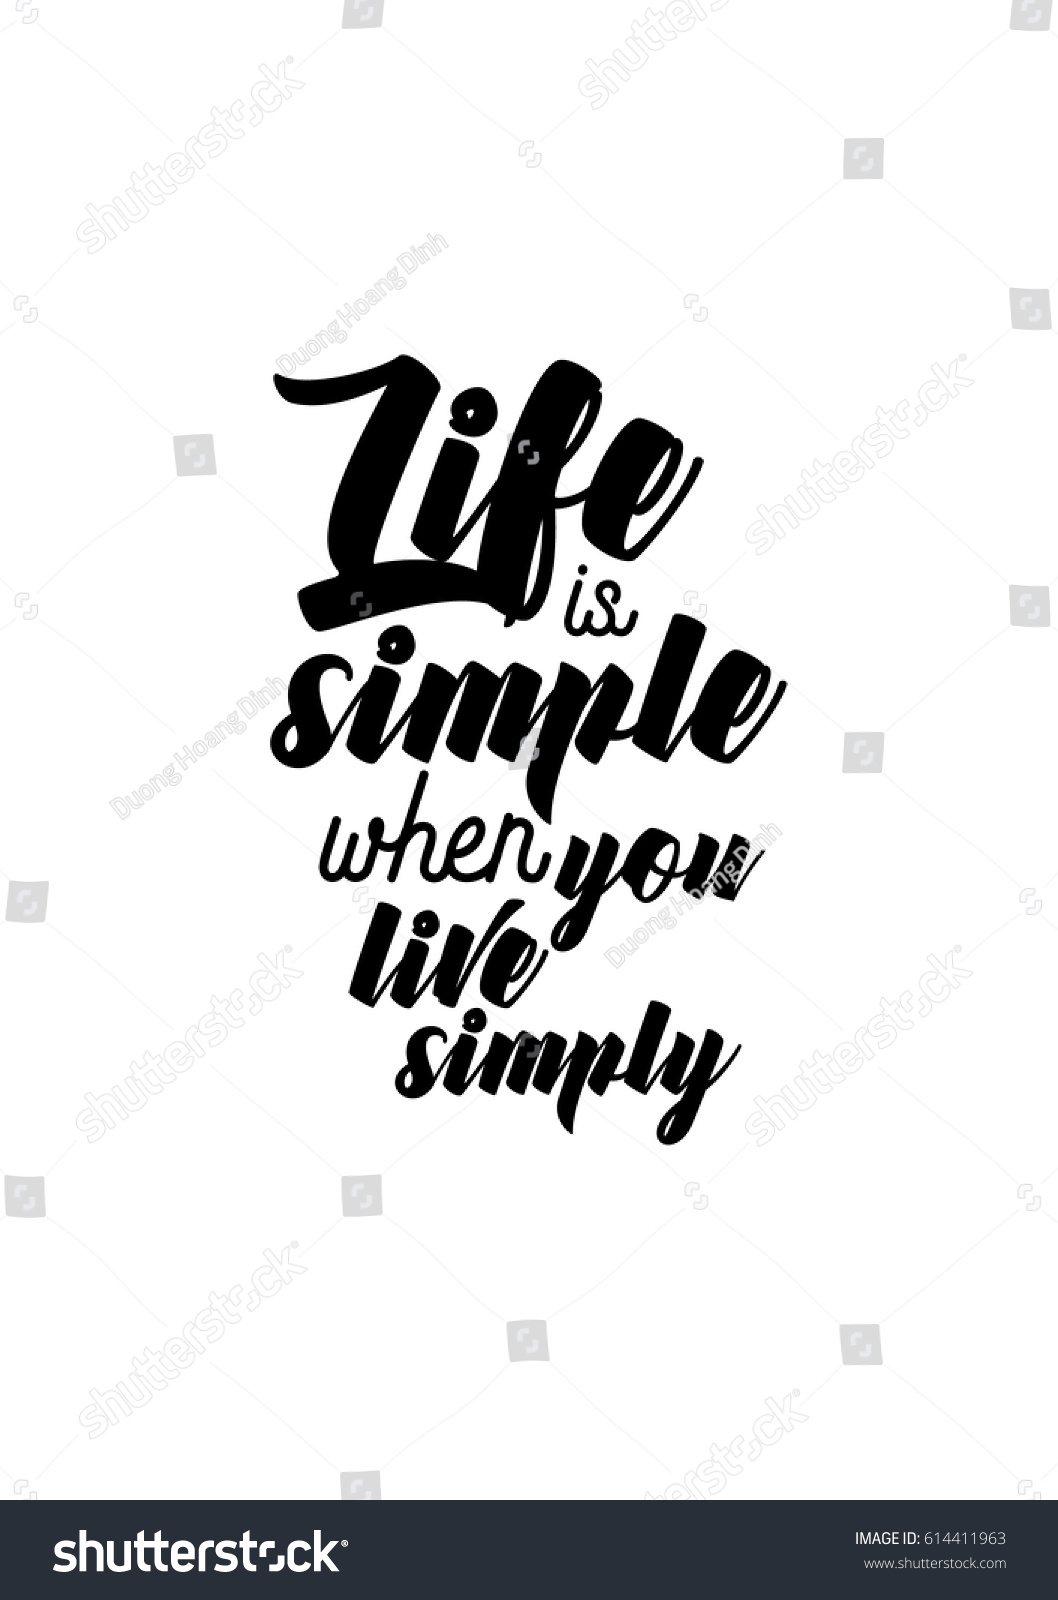 Simple Quotes About Life Travel Life Style Inspiration Quotes Lettering Stock Vector